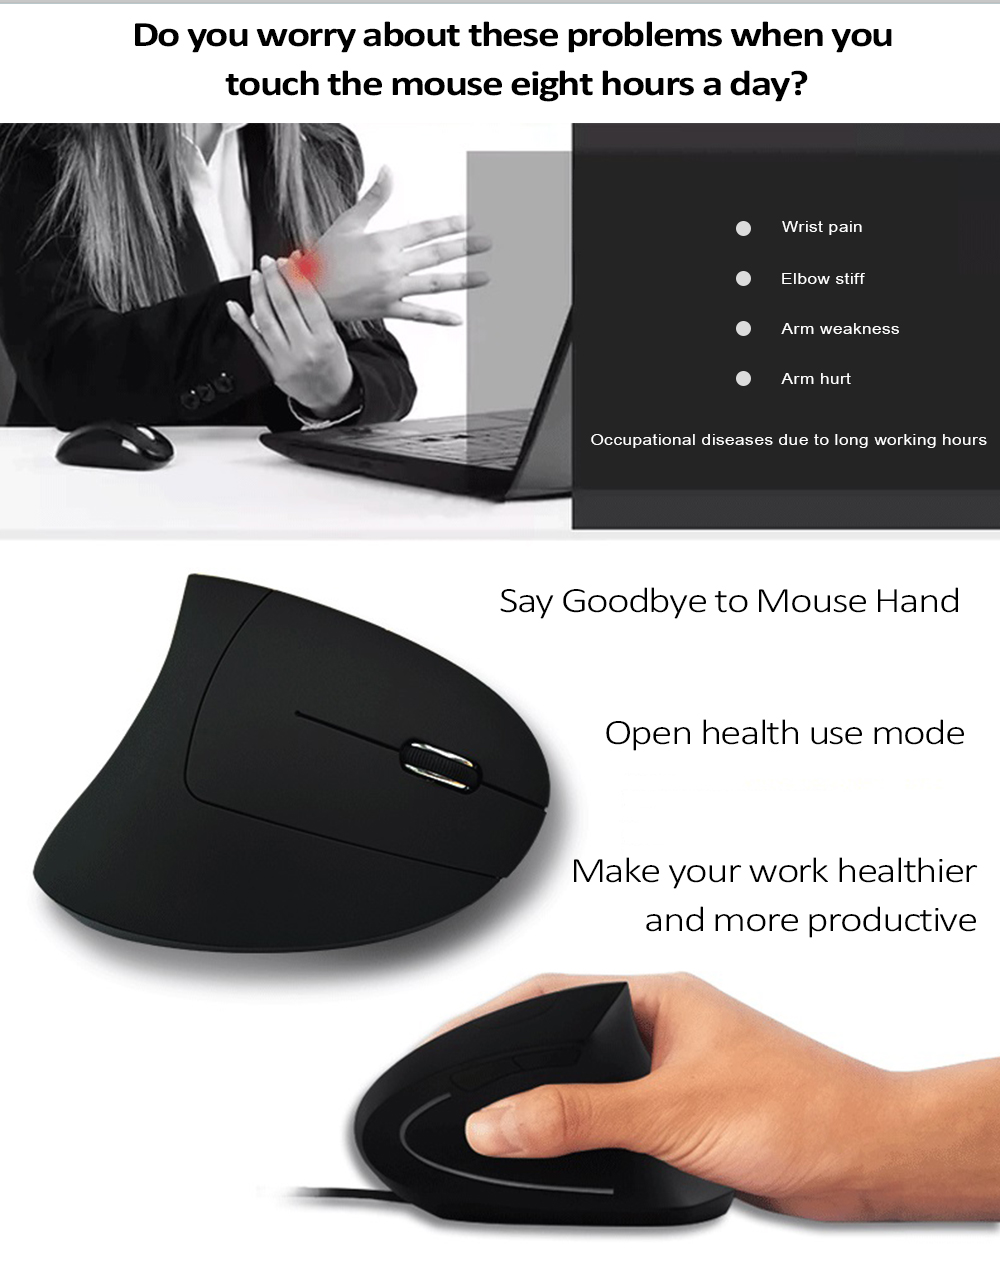 Hyw 69 Ergonomic Vertical Erect Design Wireless 24ghz Optical Arduino Radar How To Fade An Led With Your Breath Open Electronics Rgb Breathing Light Mouse